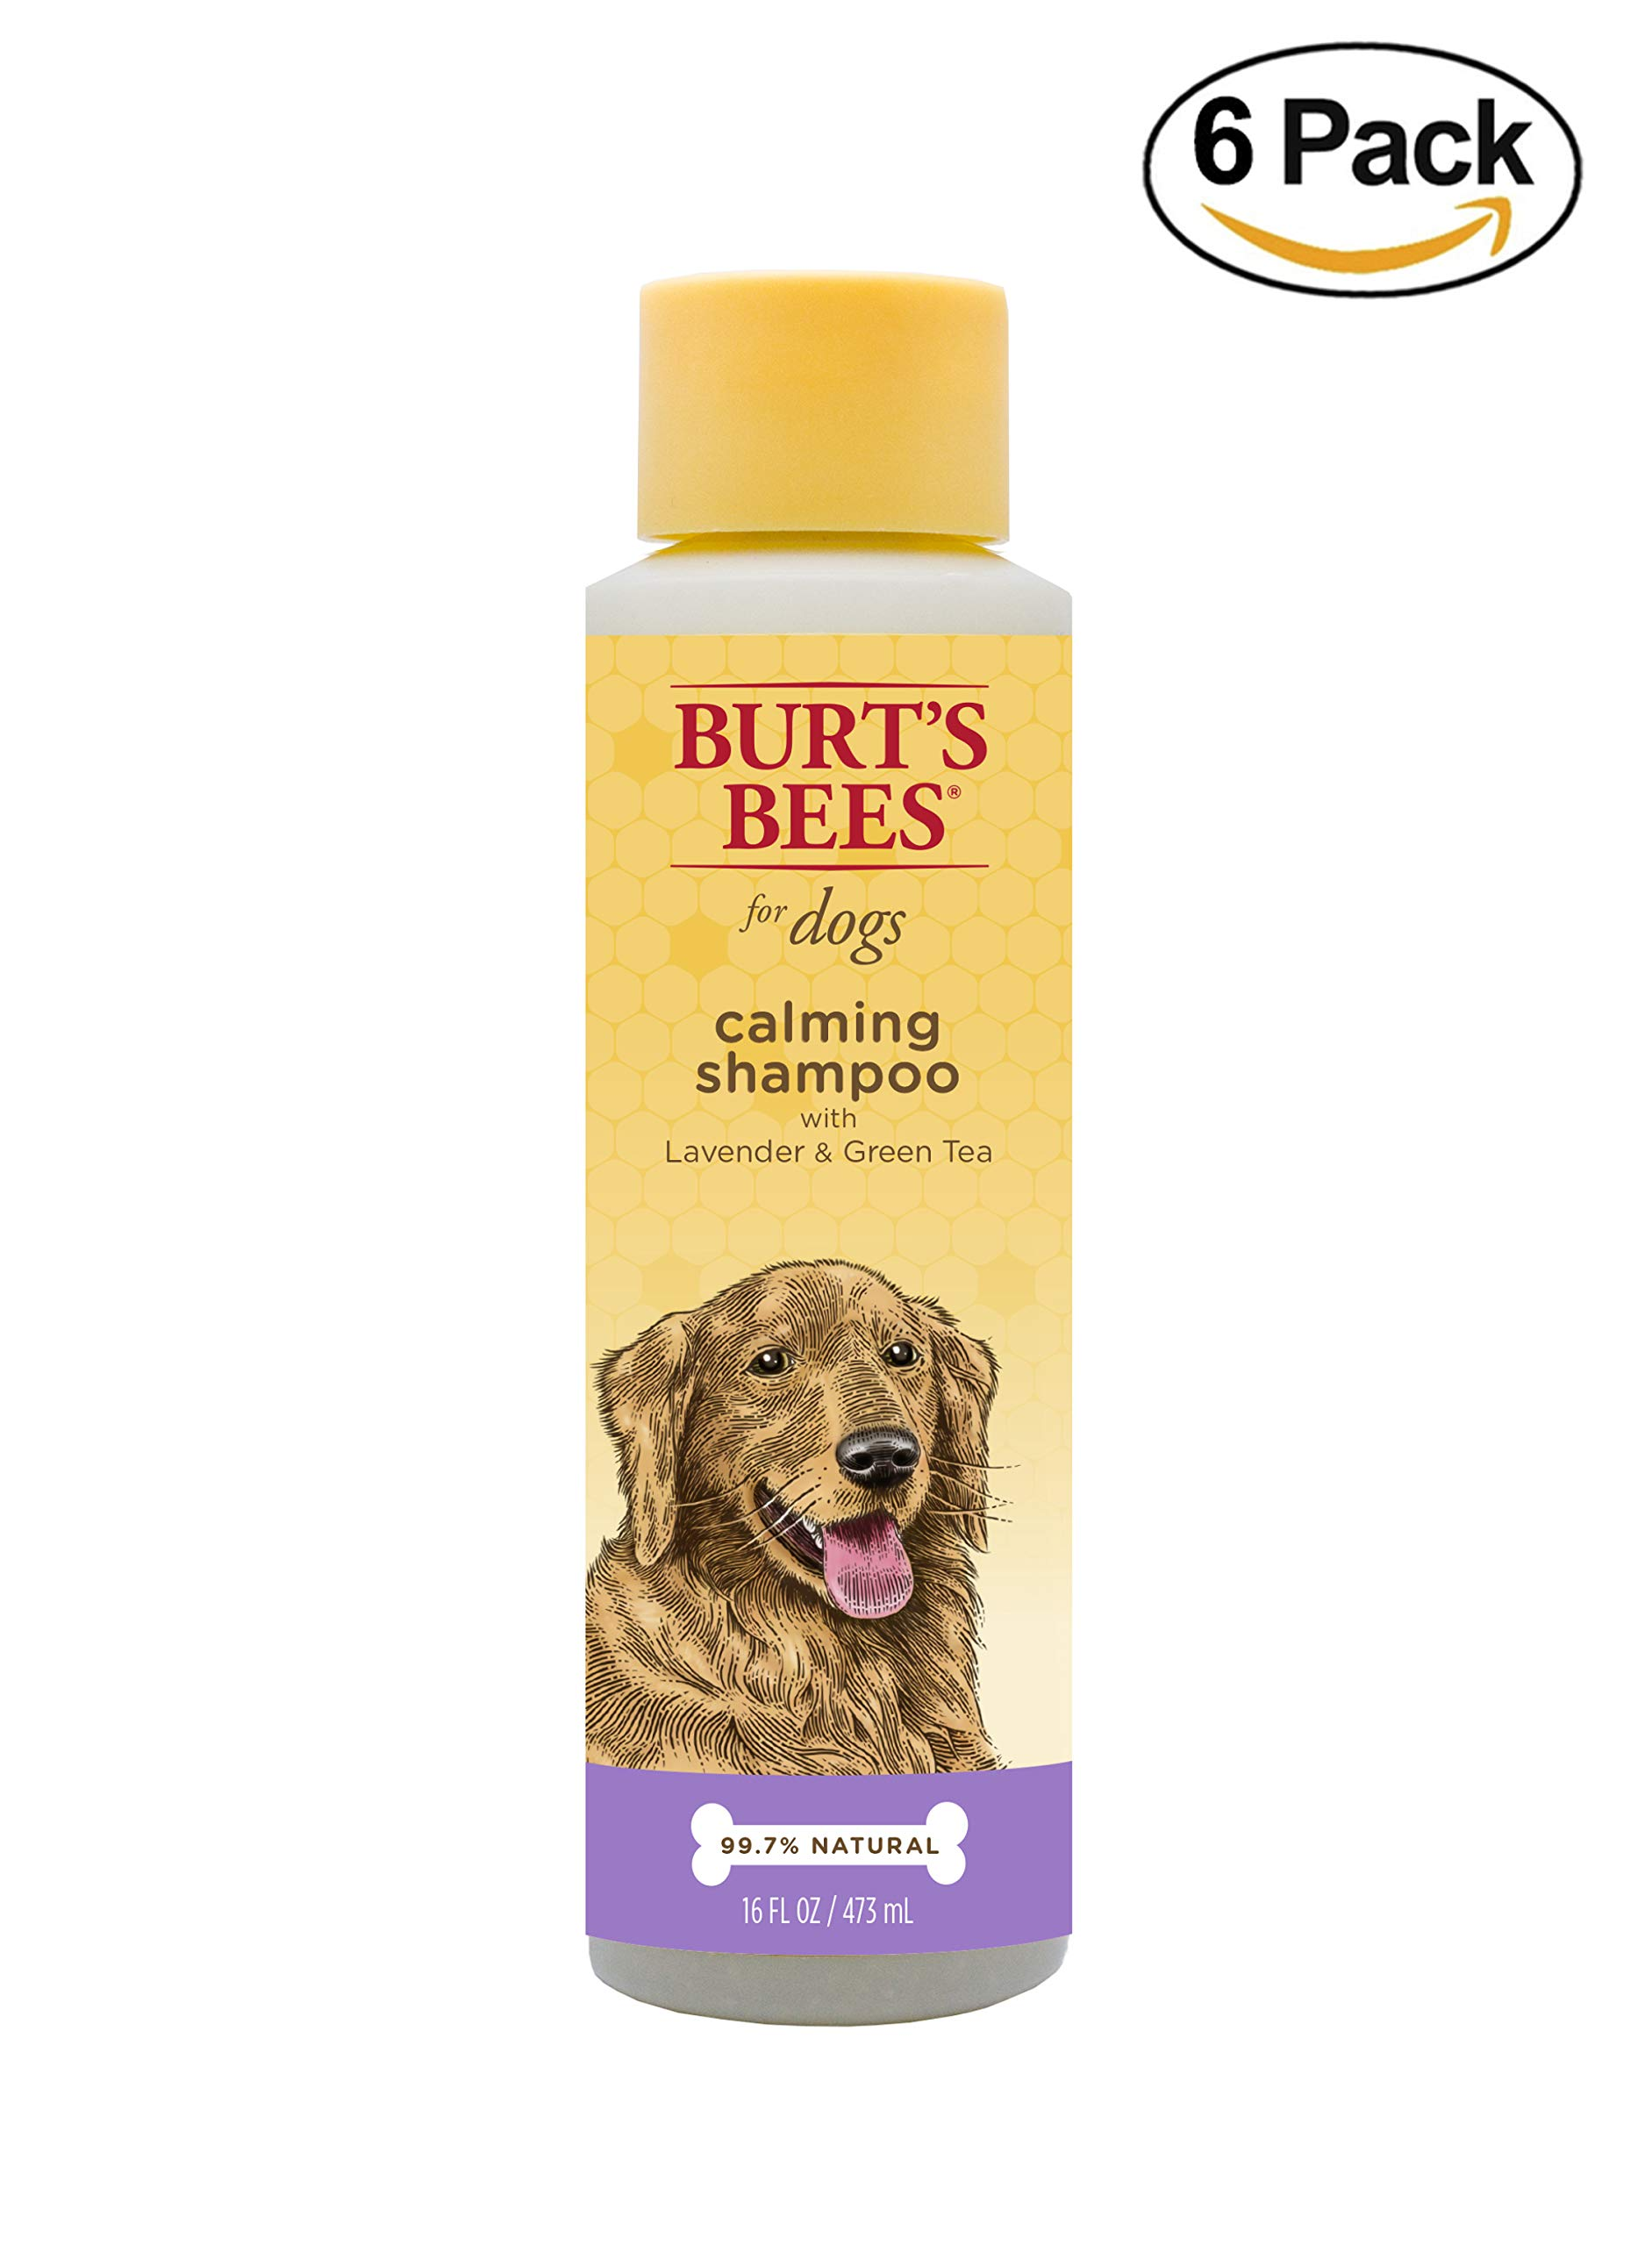 Burt's Bees All Natural Calming Shampoo for Dogs | Soothes, Calms & Revitalizes | Made with Lavender and Green Tea, 16 Ounces - 6 Pack